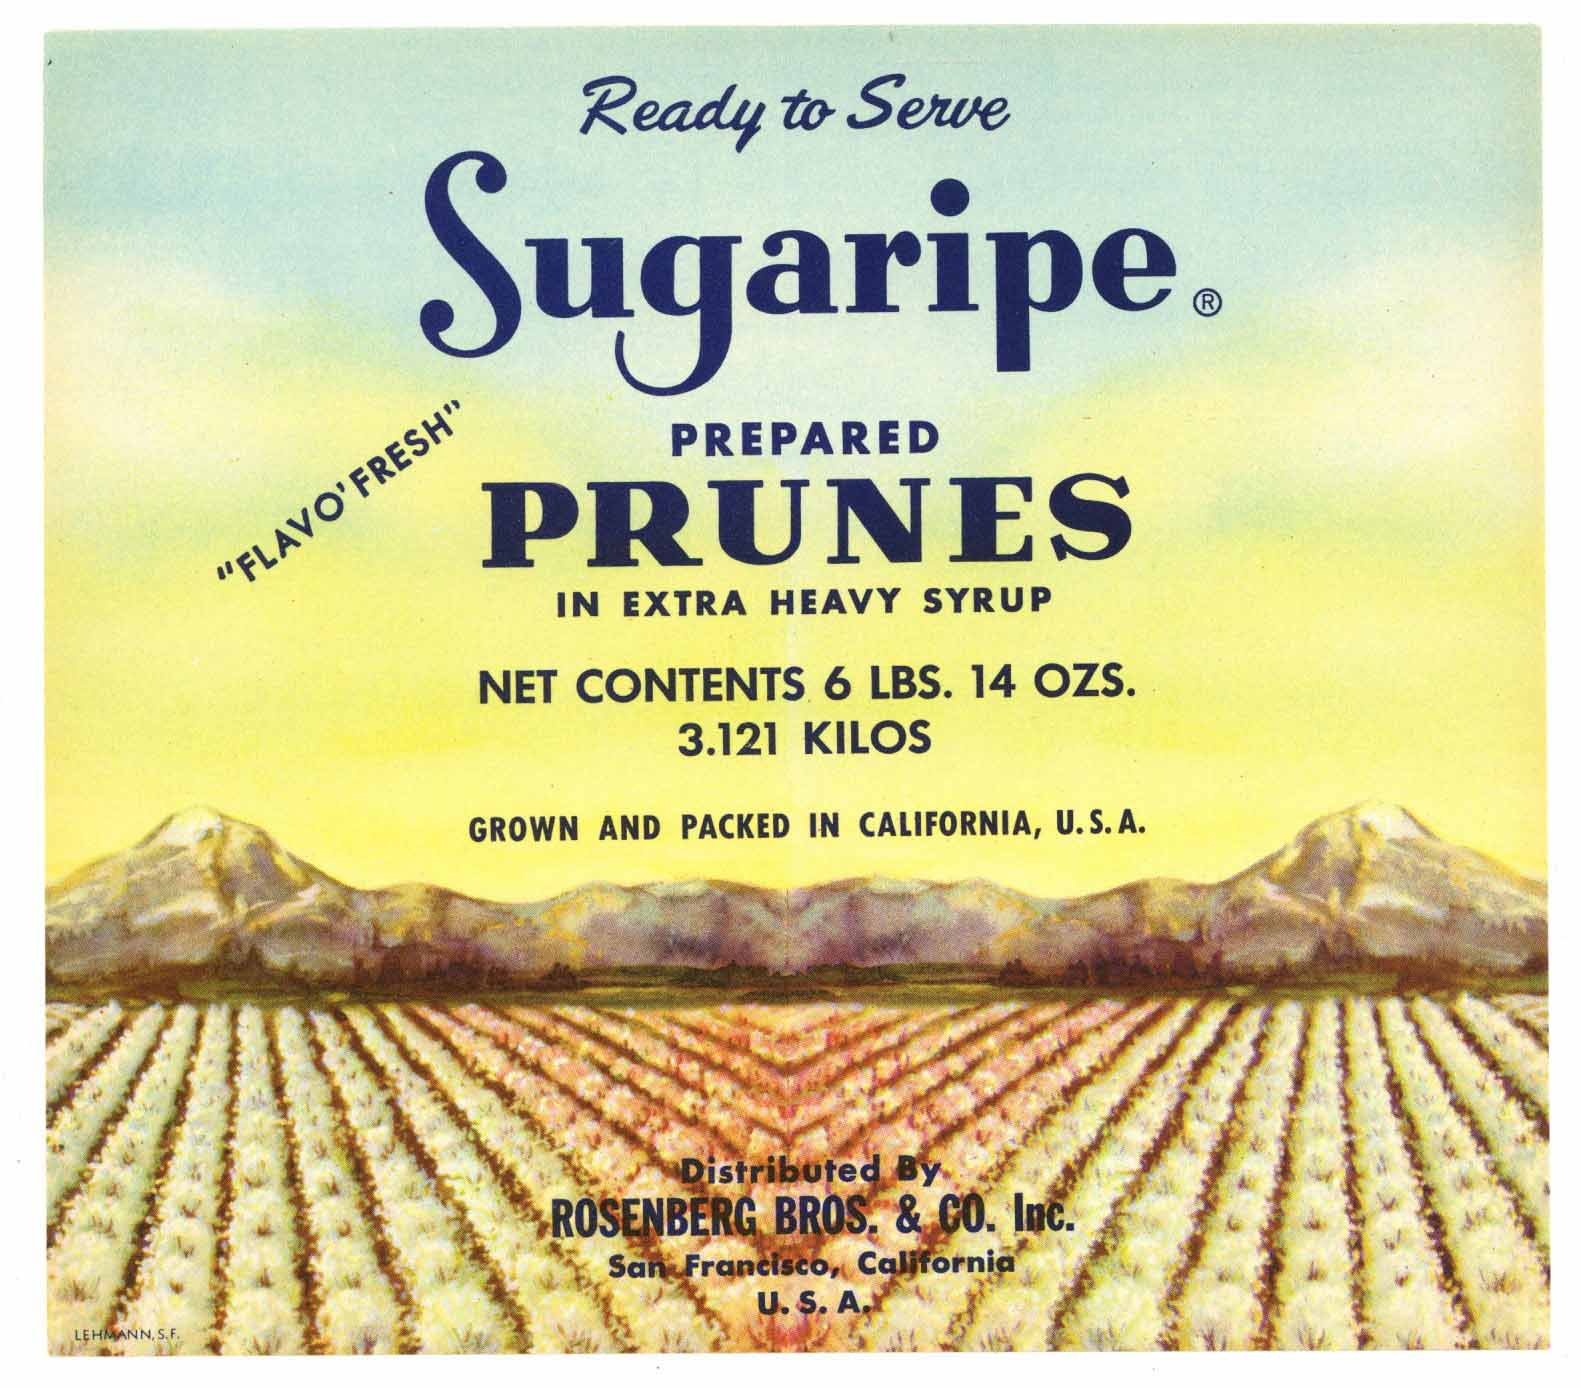 Sugaripe Brand Vintage Prune Can Label, n